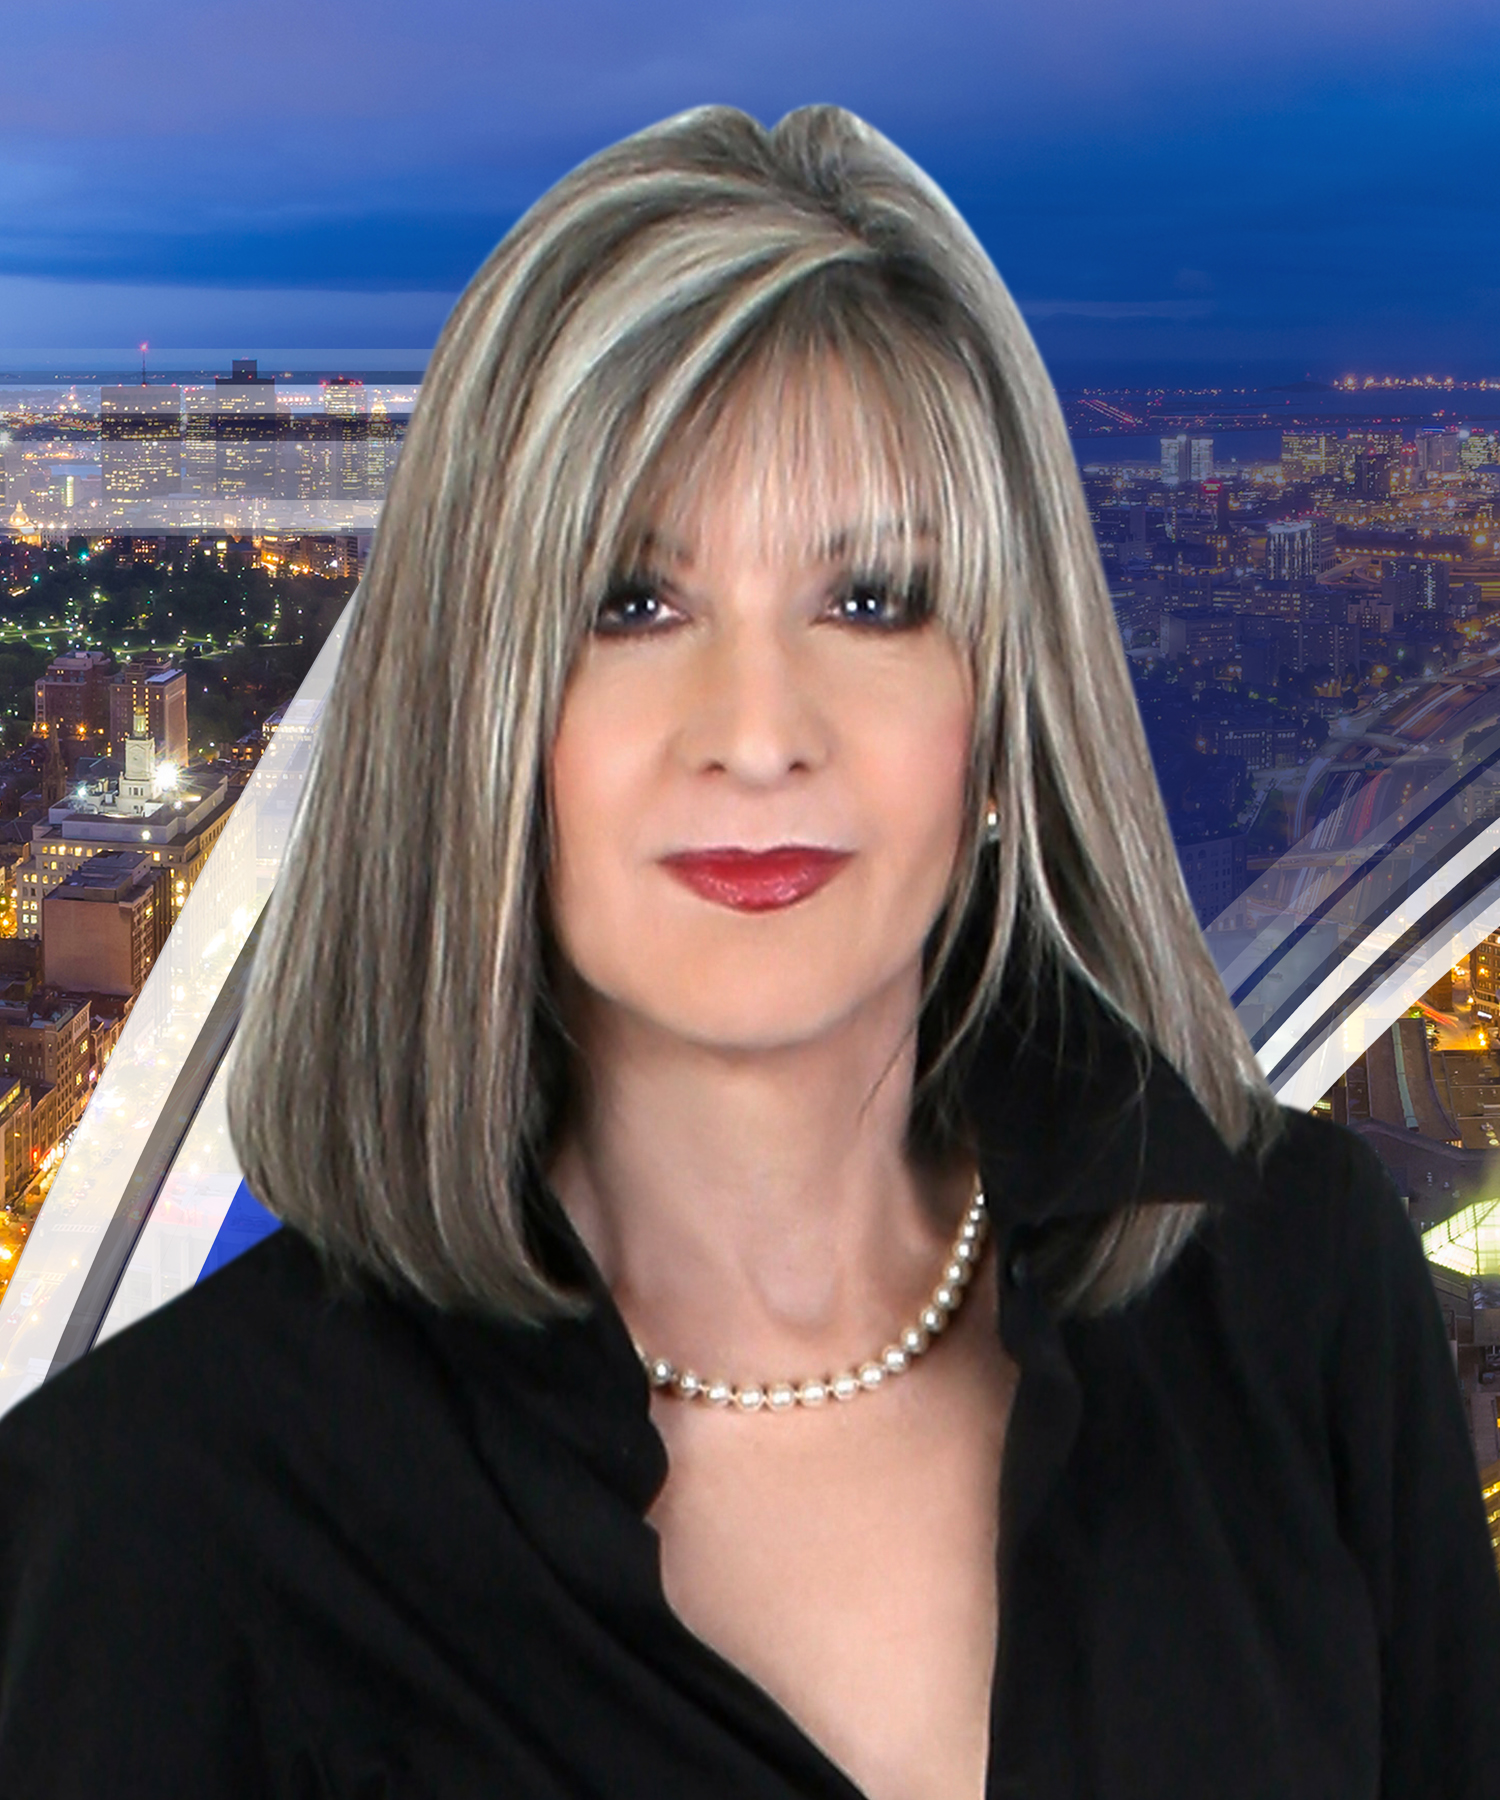 Headshot - Hank Phillippi Ryan.jpg